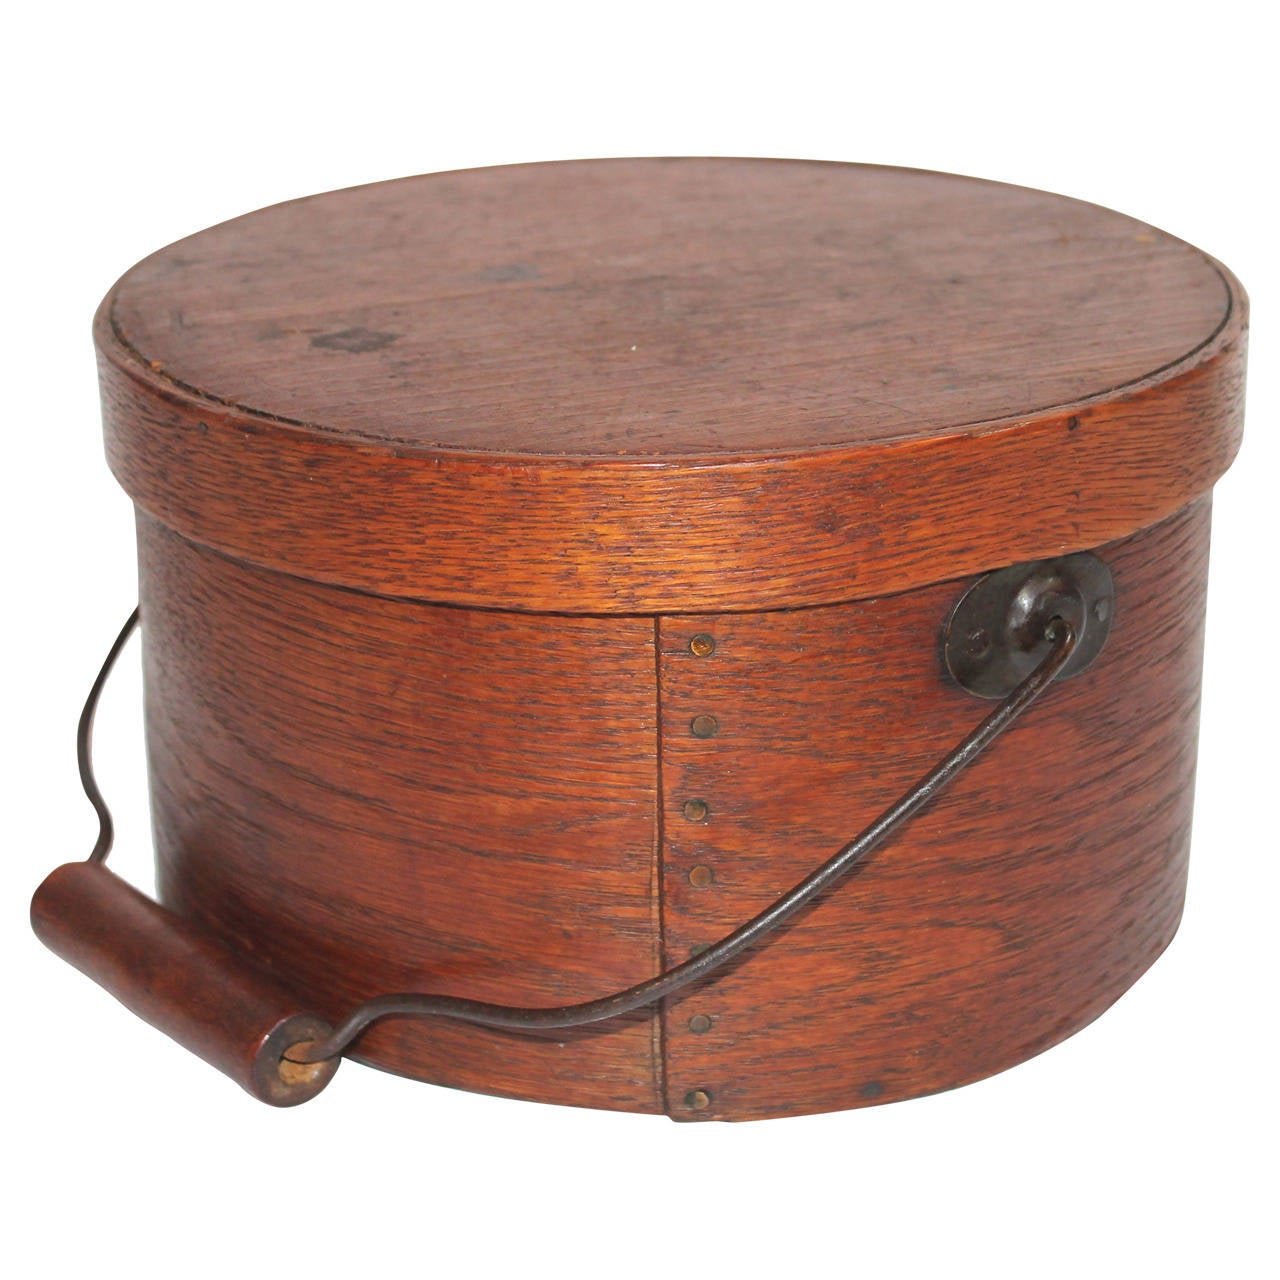 Pantry Boxes For Sale: 19th Century Natural Surface Bail Handled Pantry Box For